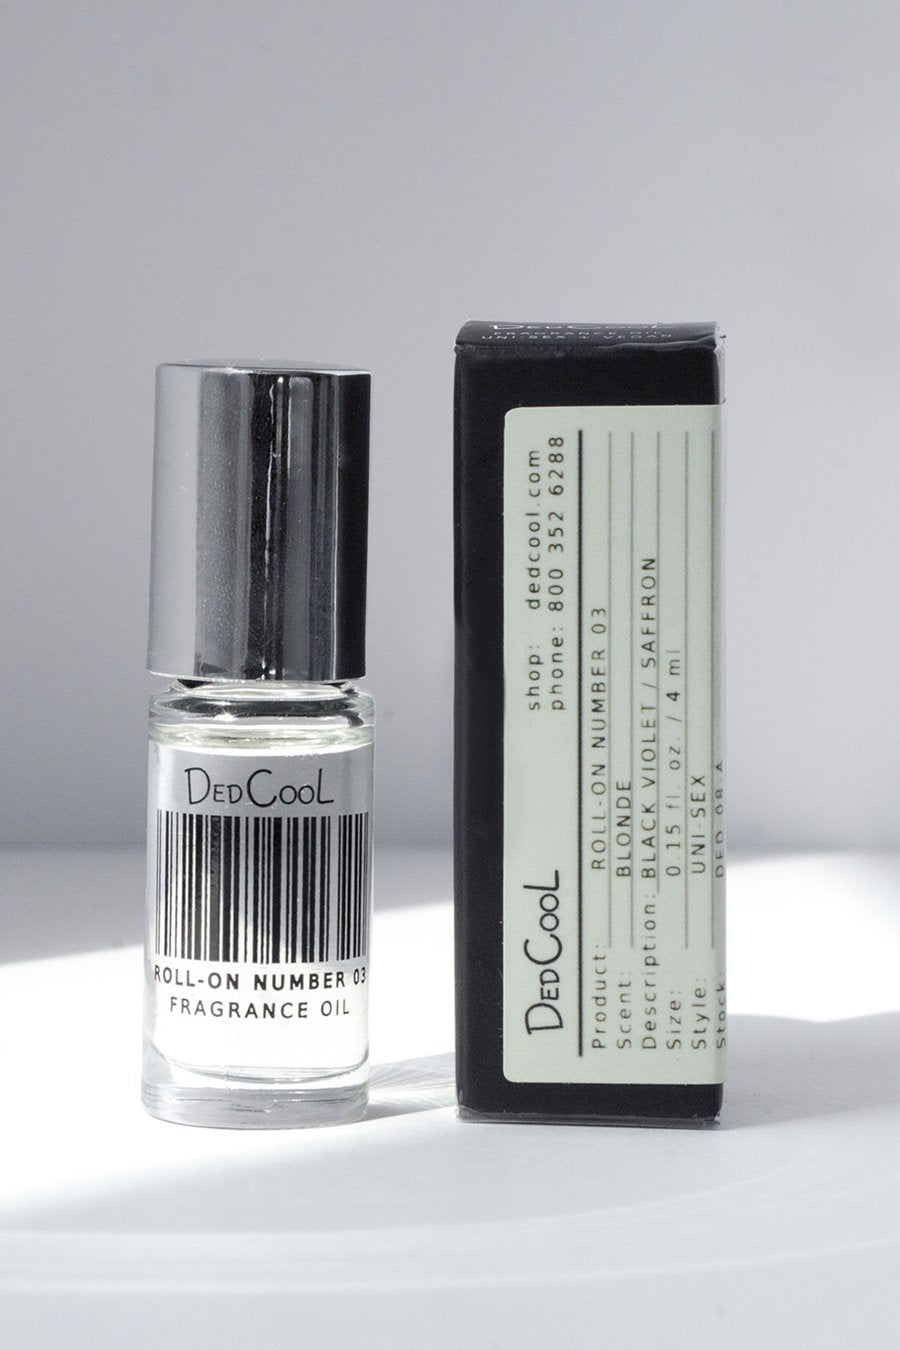 DedCool Roll-On 03 Blonde. Uni-Sex, Non-Toxic, Vegan, Natural, Clean, Safe, Organic Fragrance Oil. Made in Los Angeles.